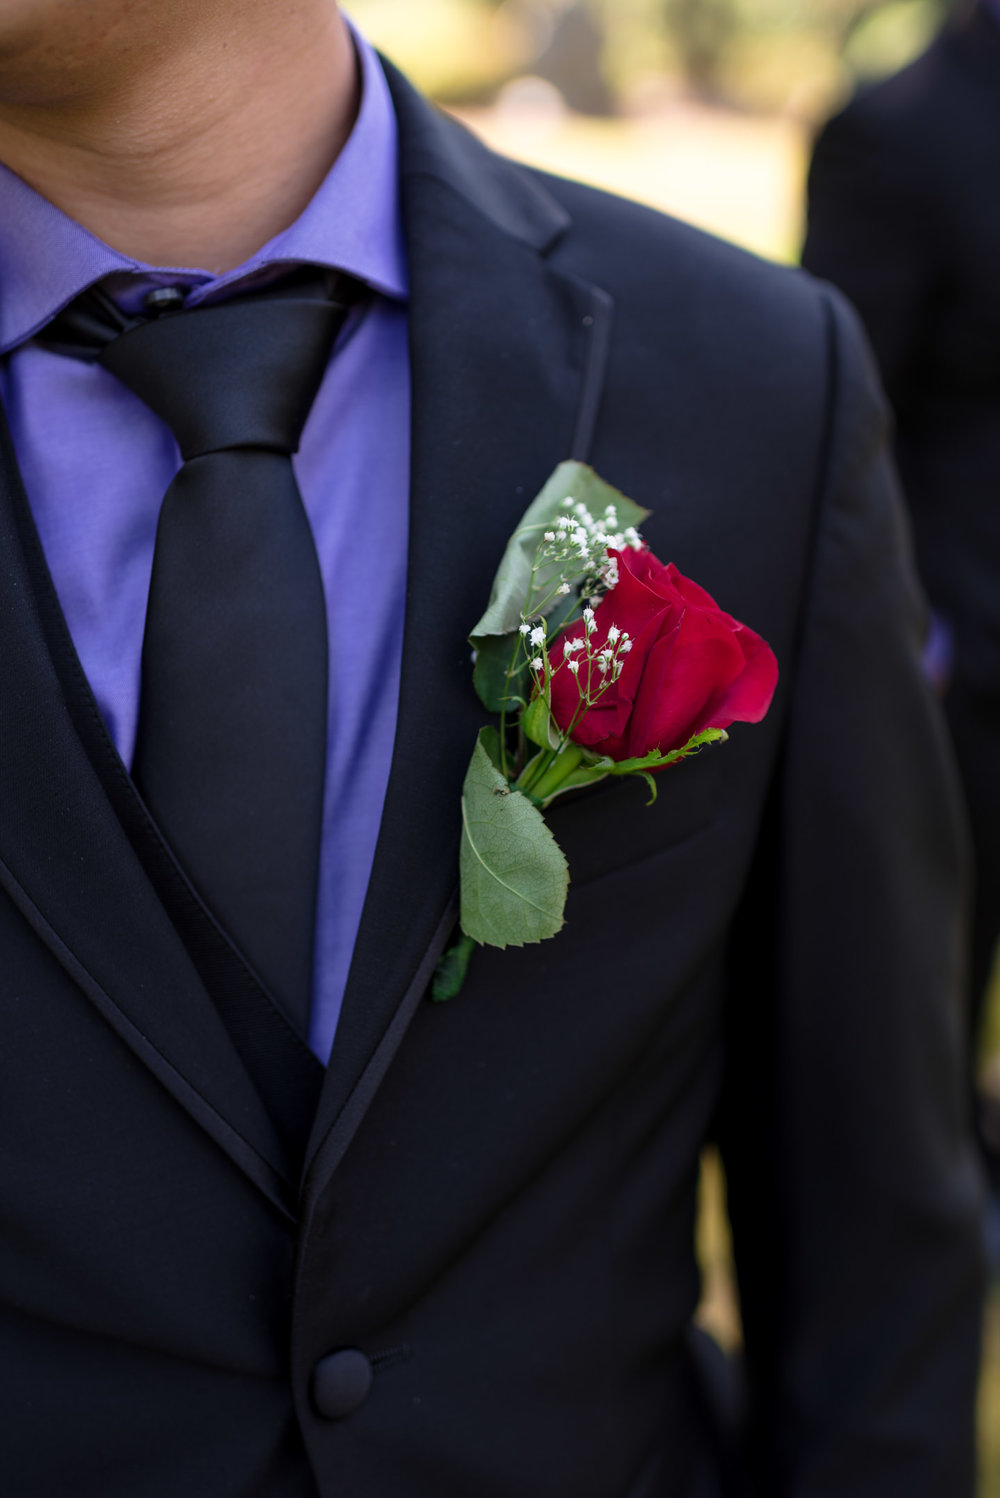 Asian Groom Boutonneire Wedding Details